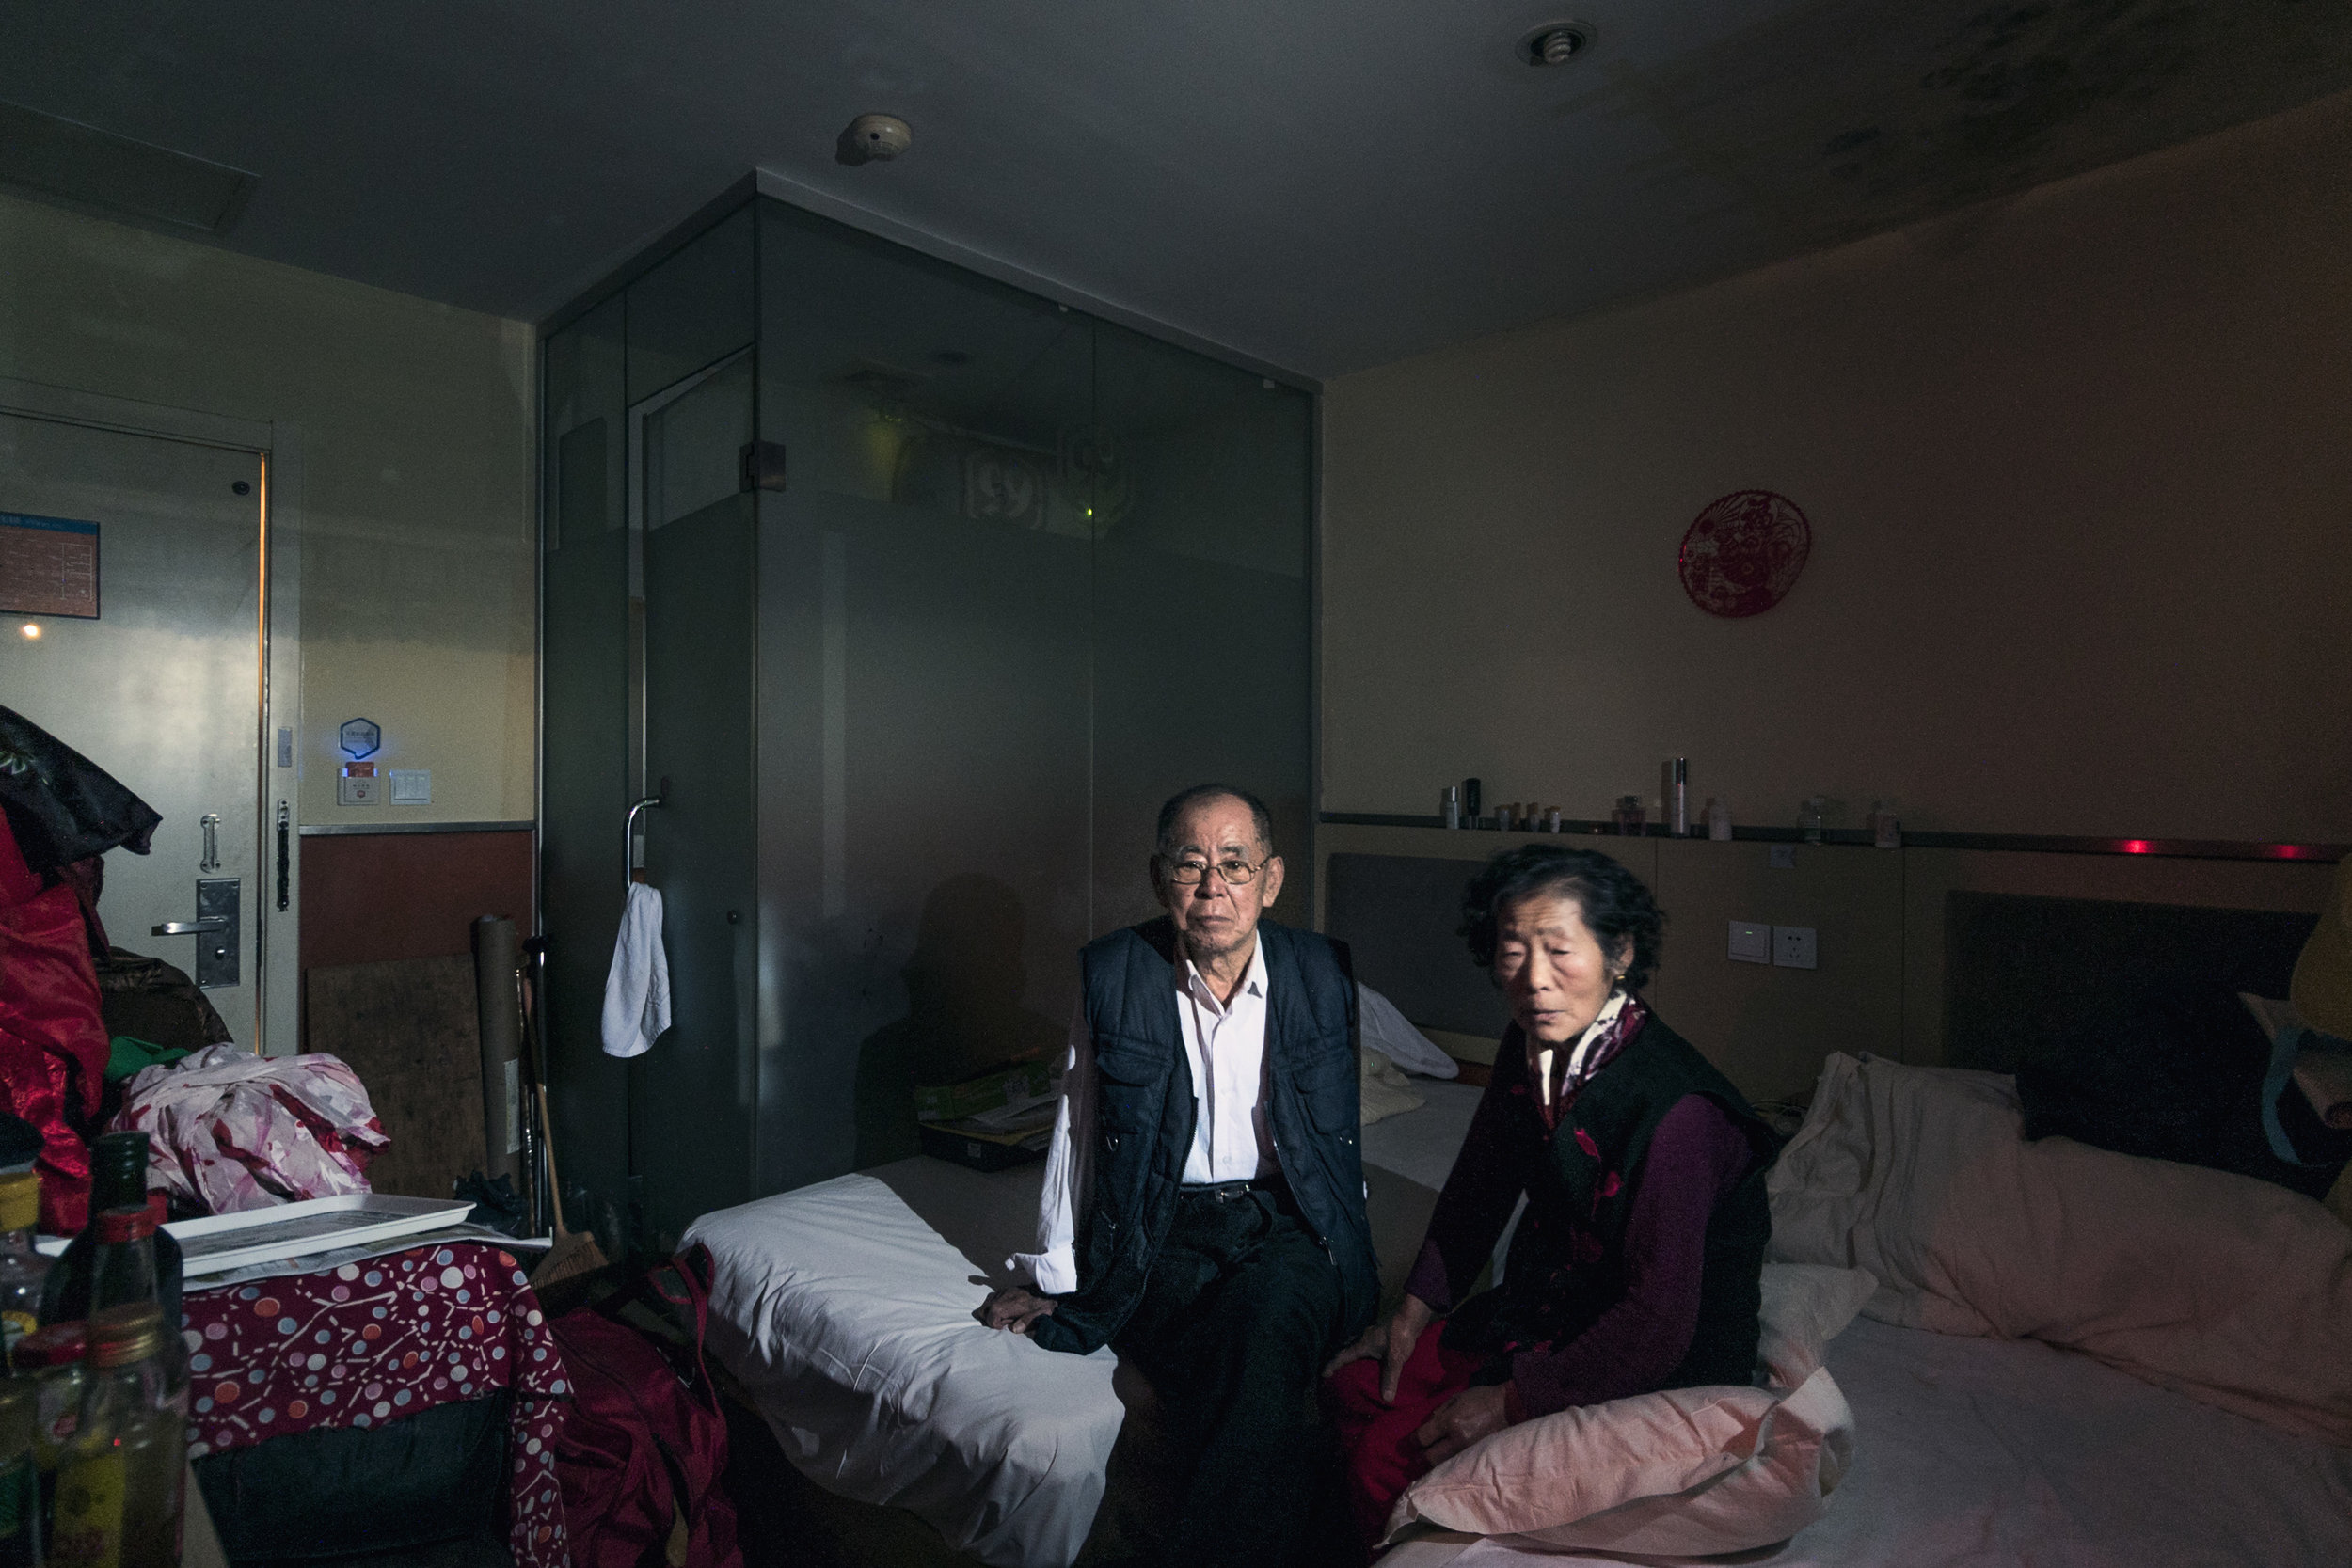 Li and his wife have lived in a motel since July 28th, 2015, when his house was demolished with no compensation.